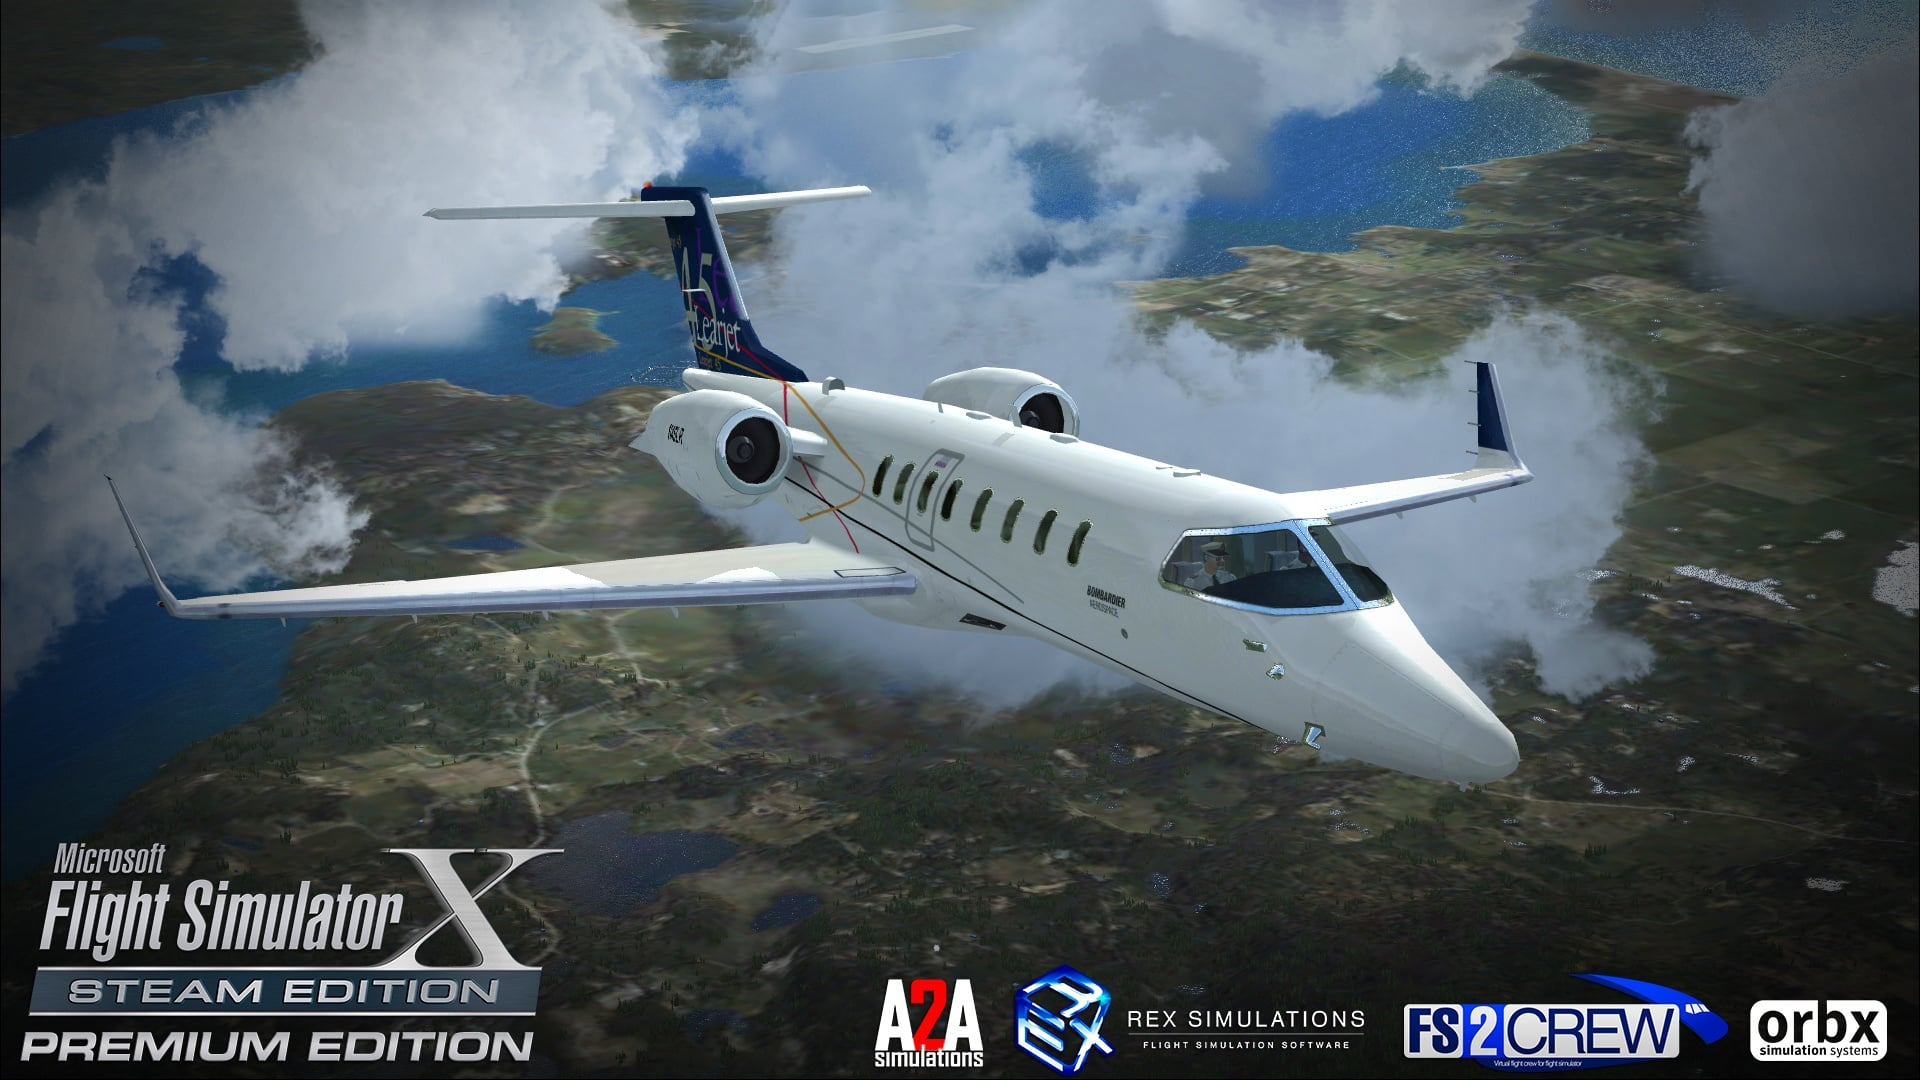 Microsoft Flight Simulator X Steam Edition PC Game Latest